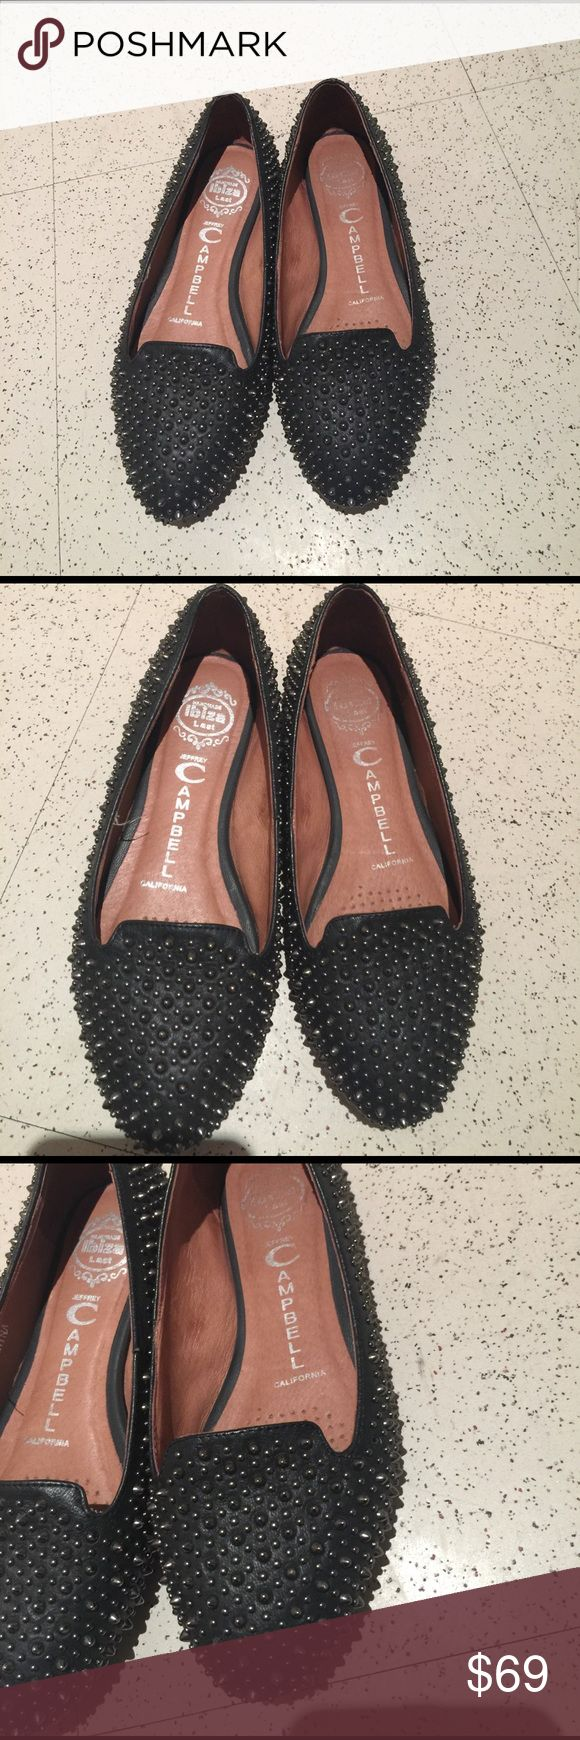 Jeffrey Campbell California fully studded flats Worn a few times. In very good condition. Studded flat Jeffrey Campbell Shoes Flats & Loafers